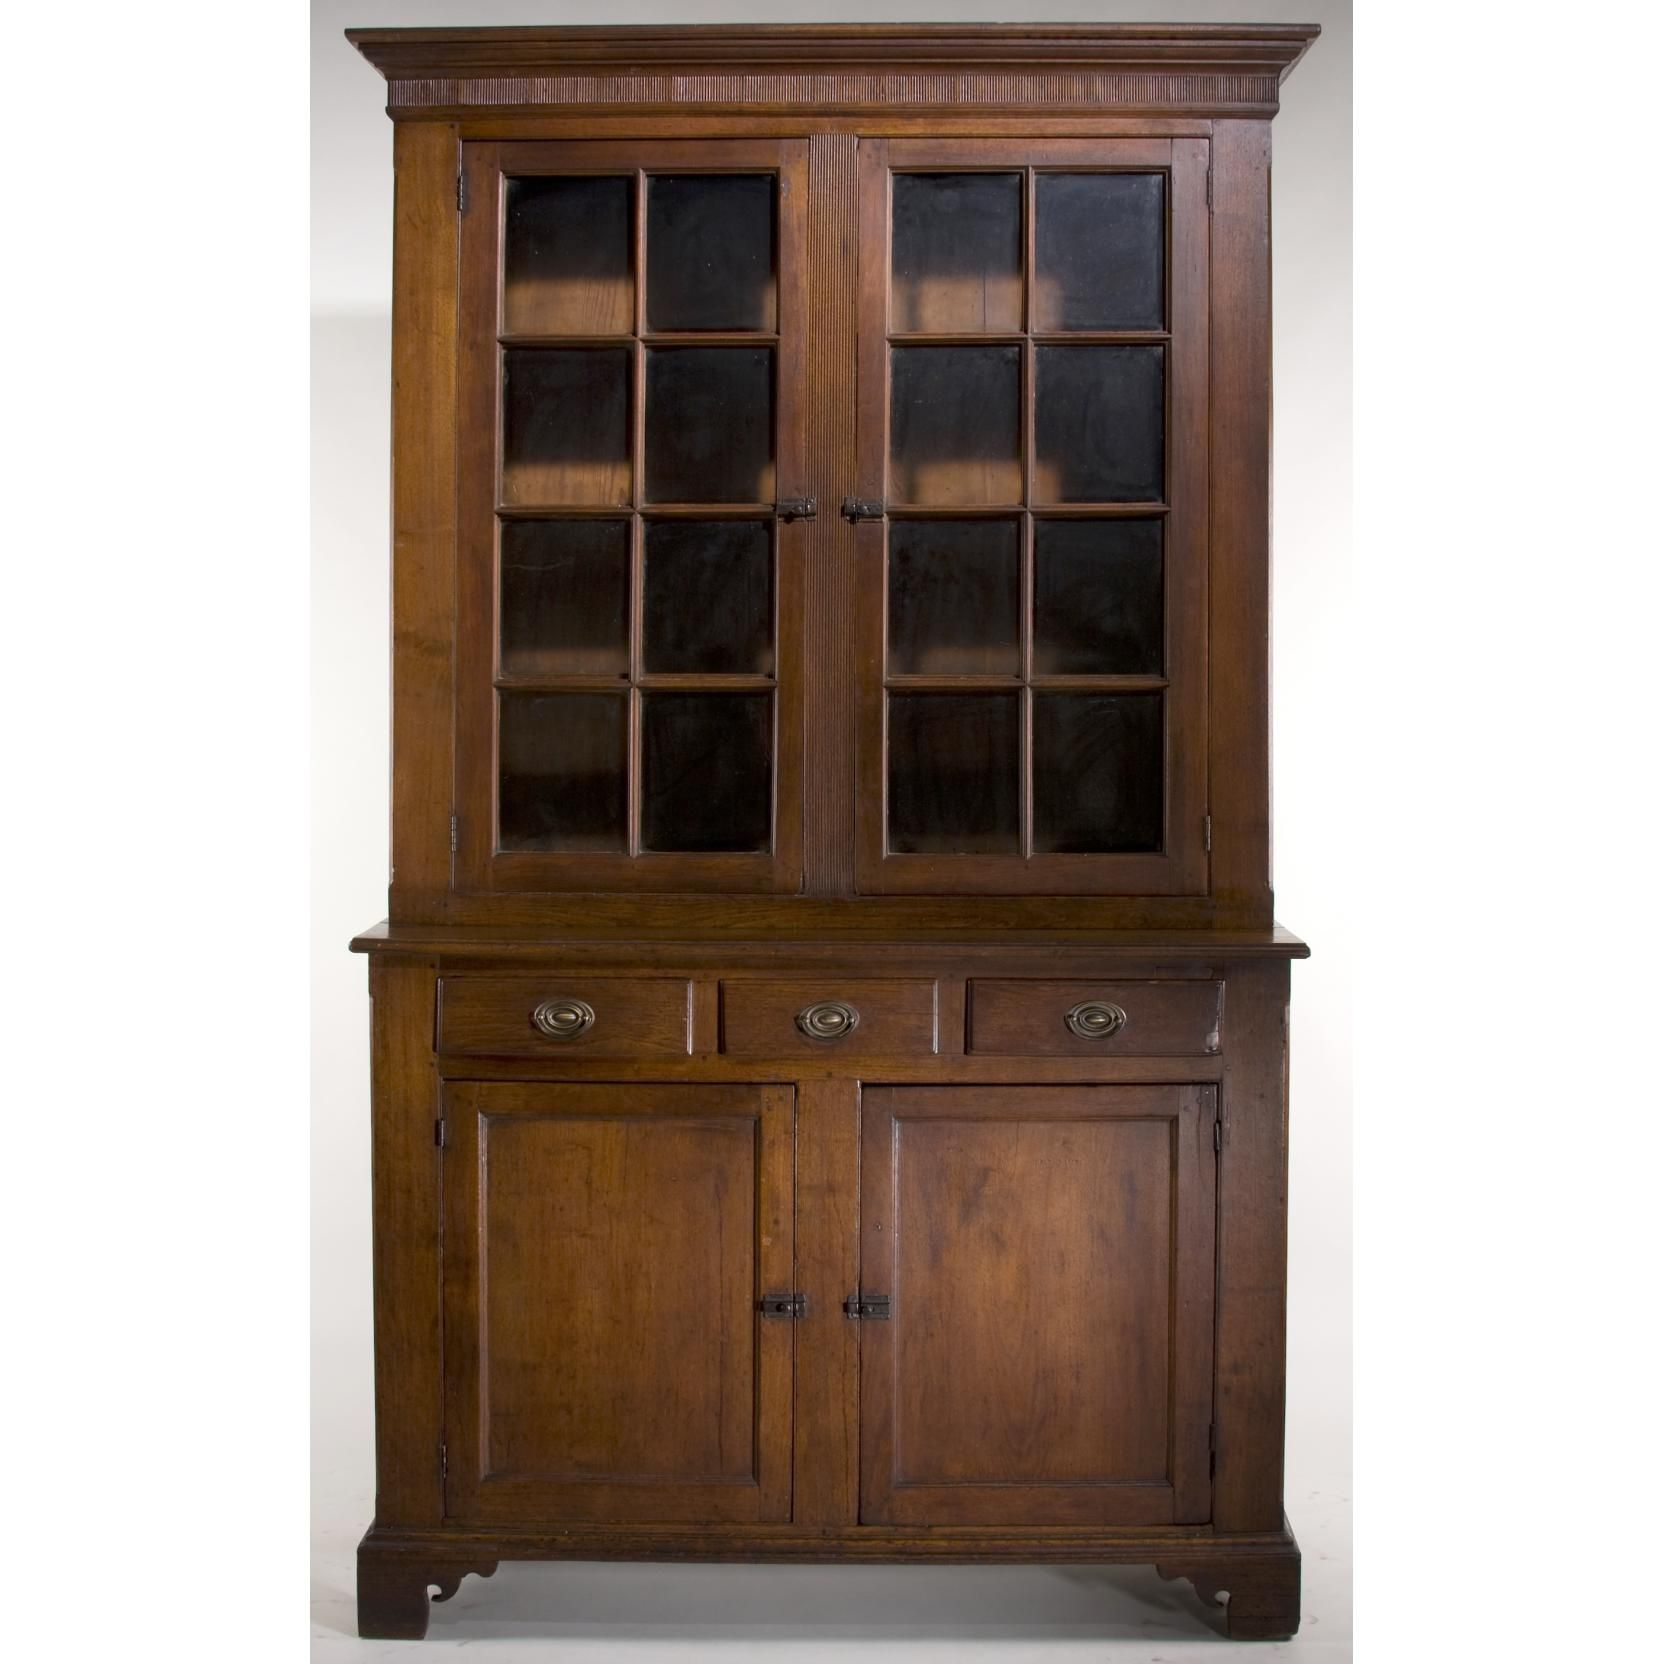 Excellent Southern Chippendale Stepback Cupboard Sold 12 000 Southern Furniture American Furniture Antique Furniture